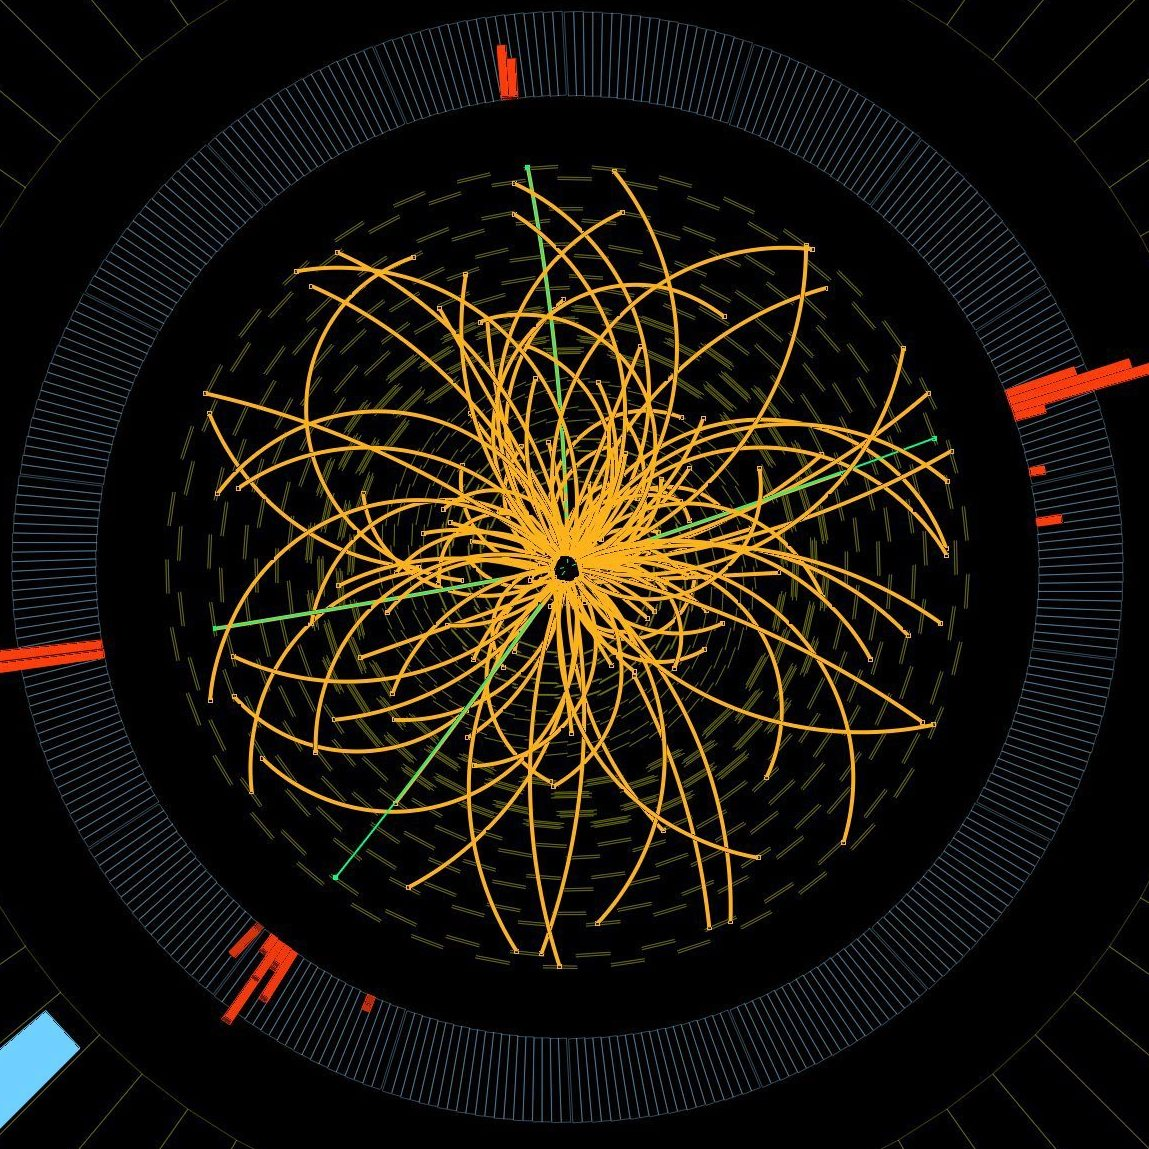 This image from the Large Hadron Collider shows data consistent with the Higgs boson.